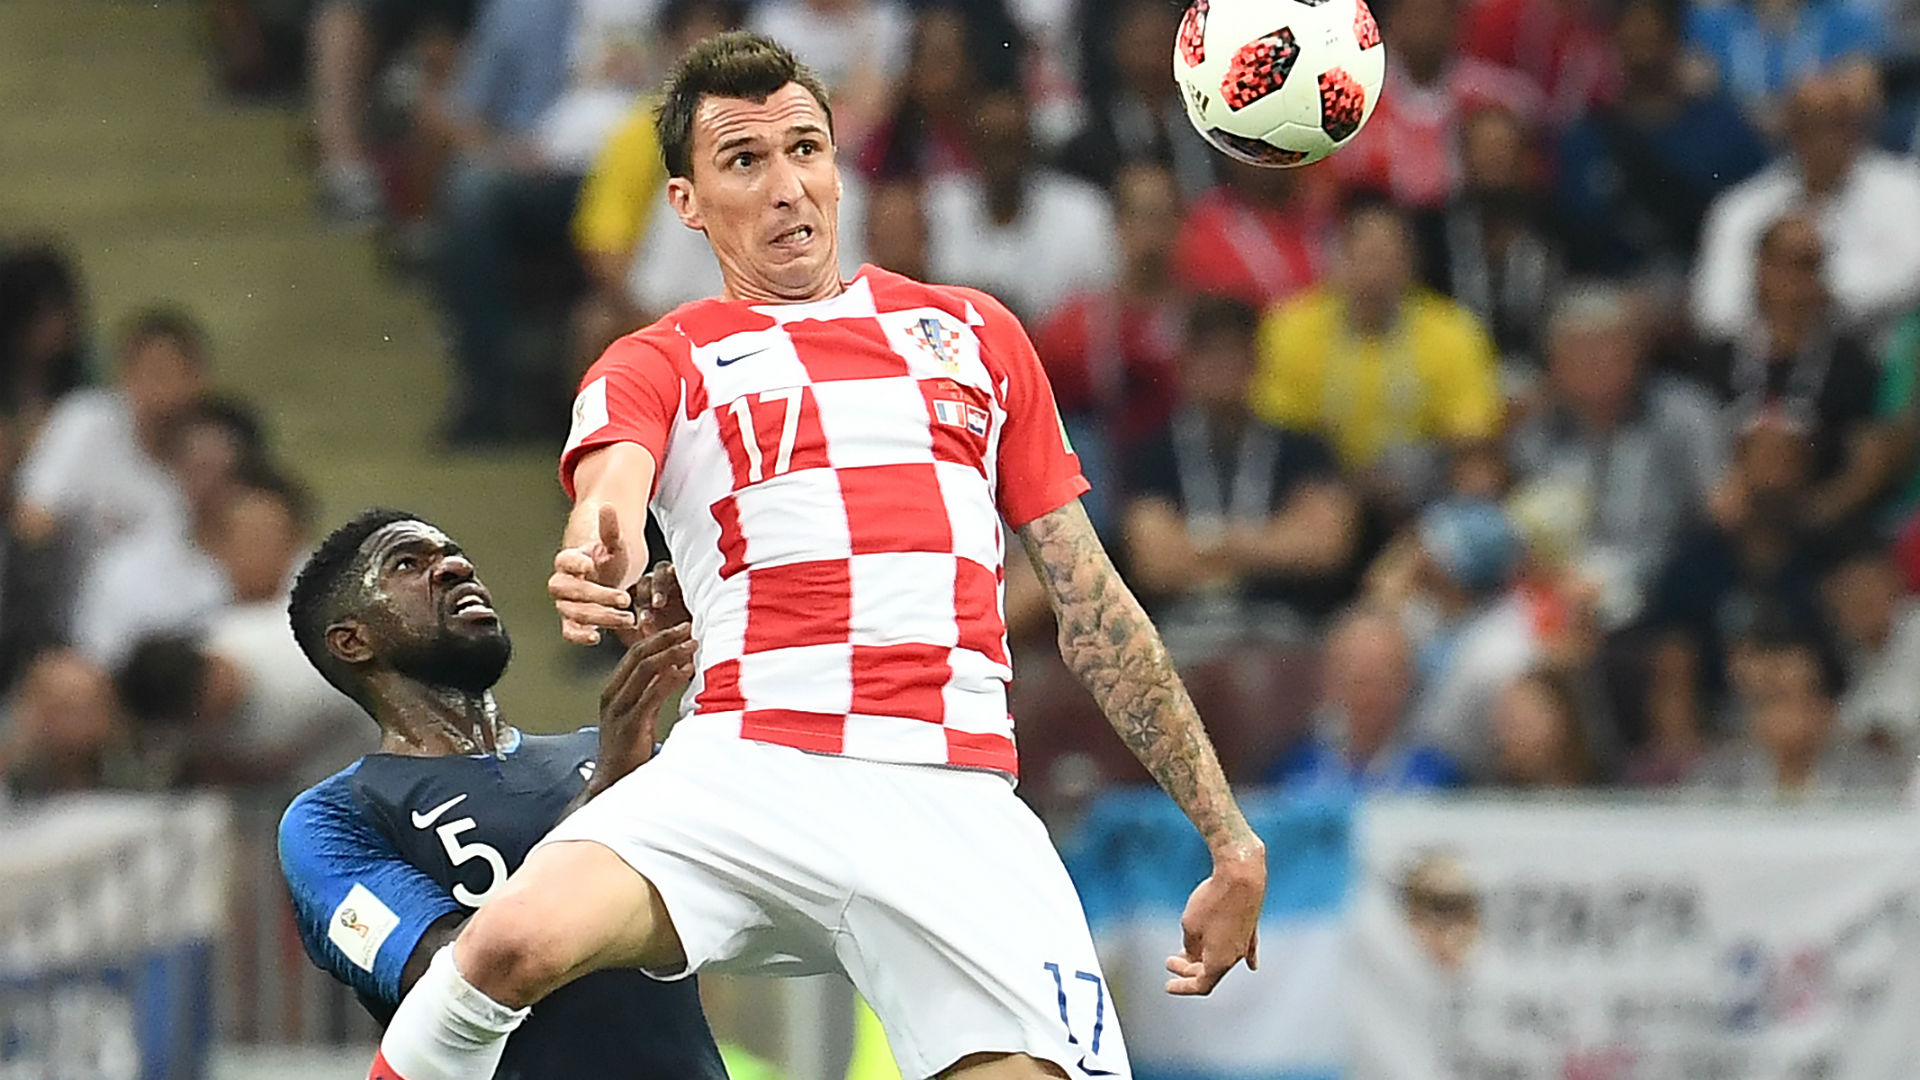 Mario Mandzukic Samuel Umtiti France Croatia World Cup final 2018